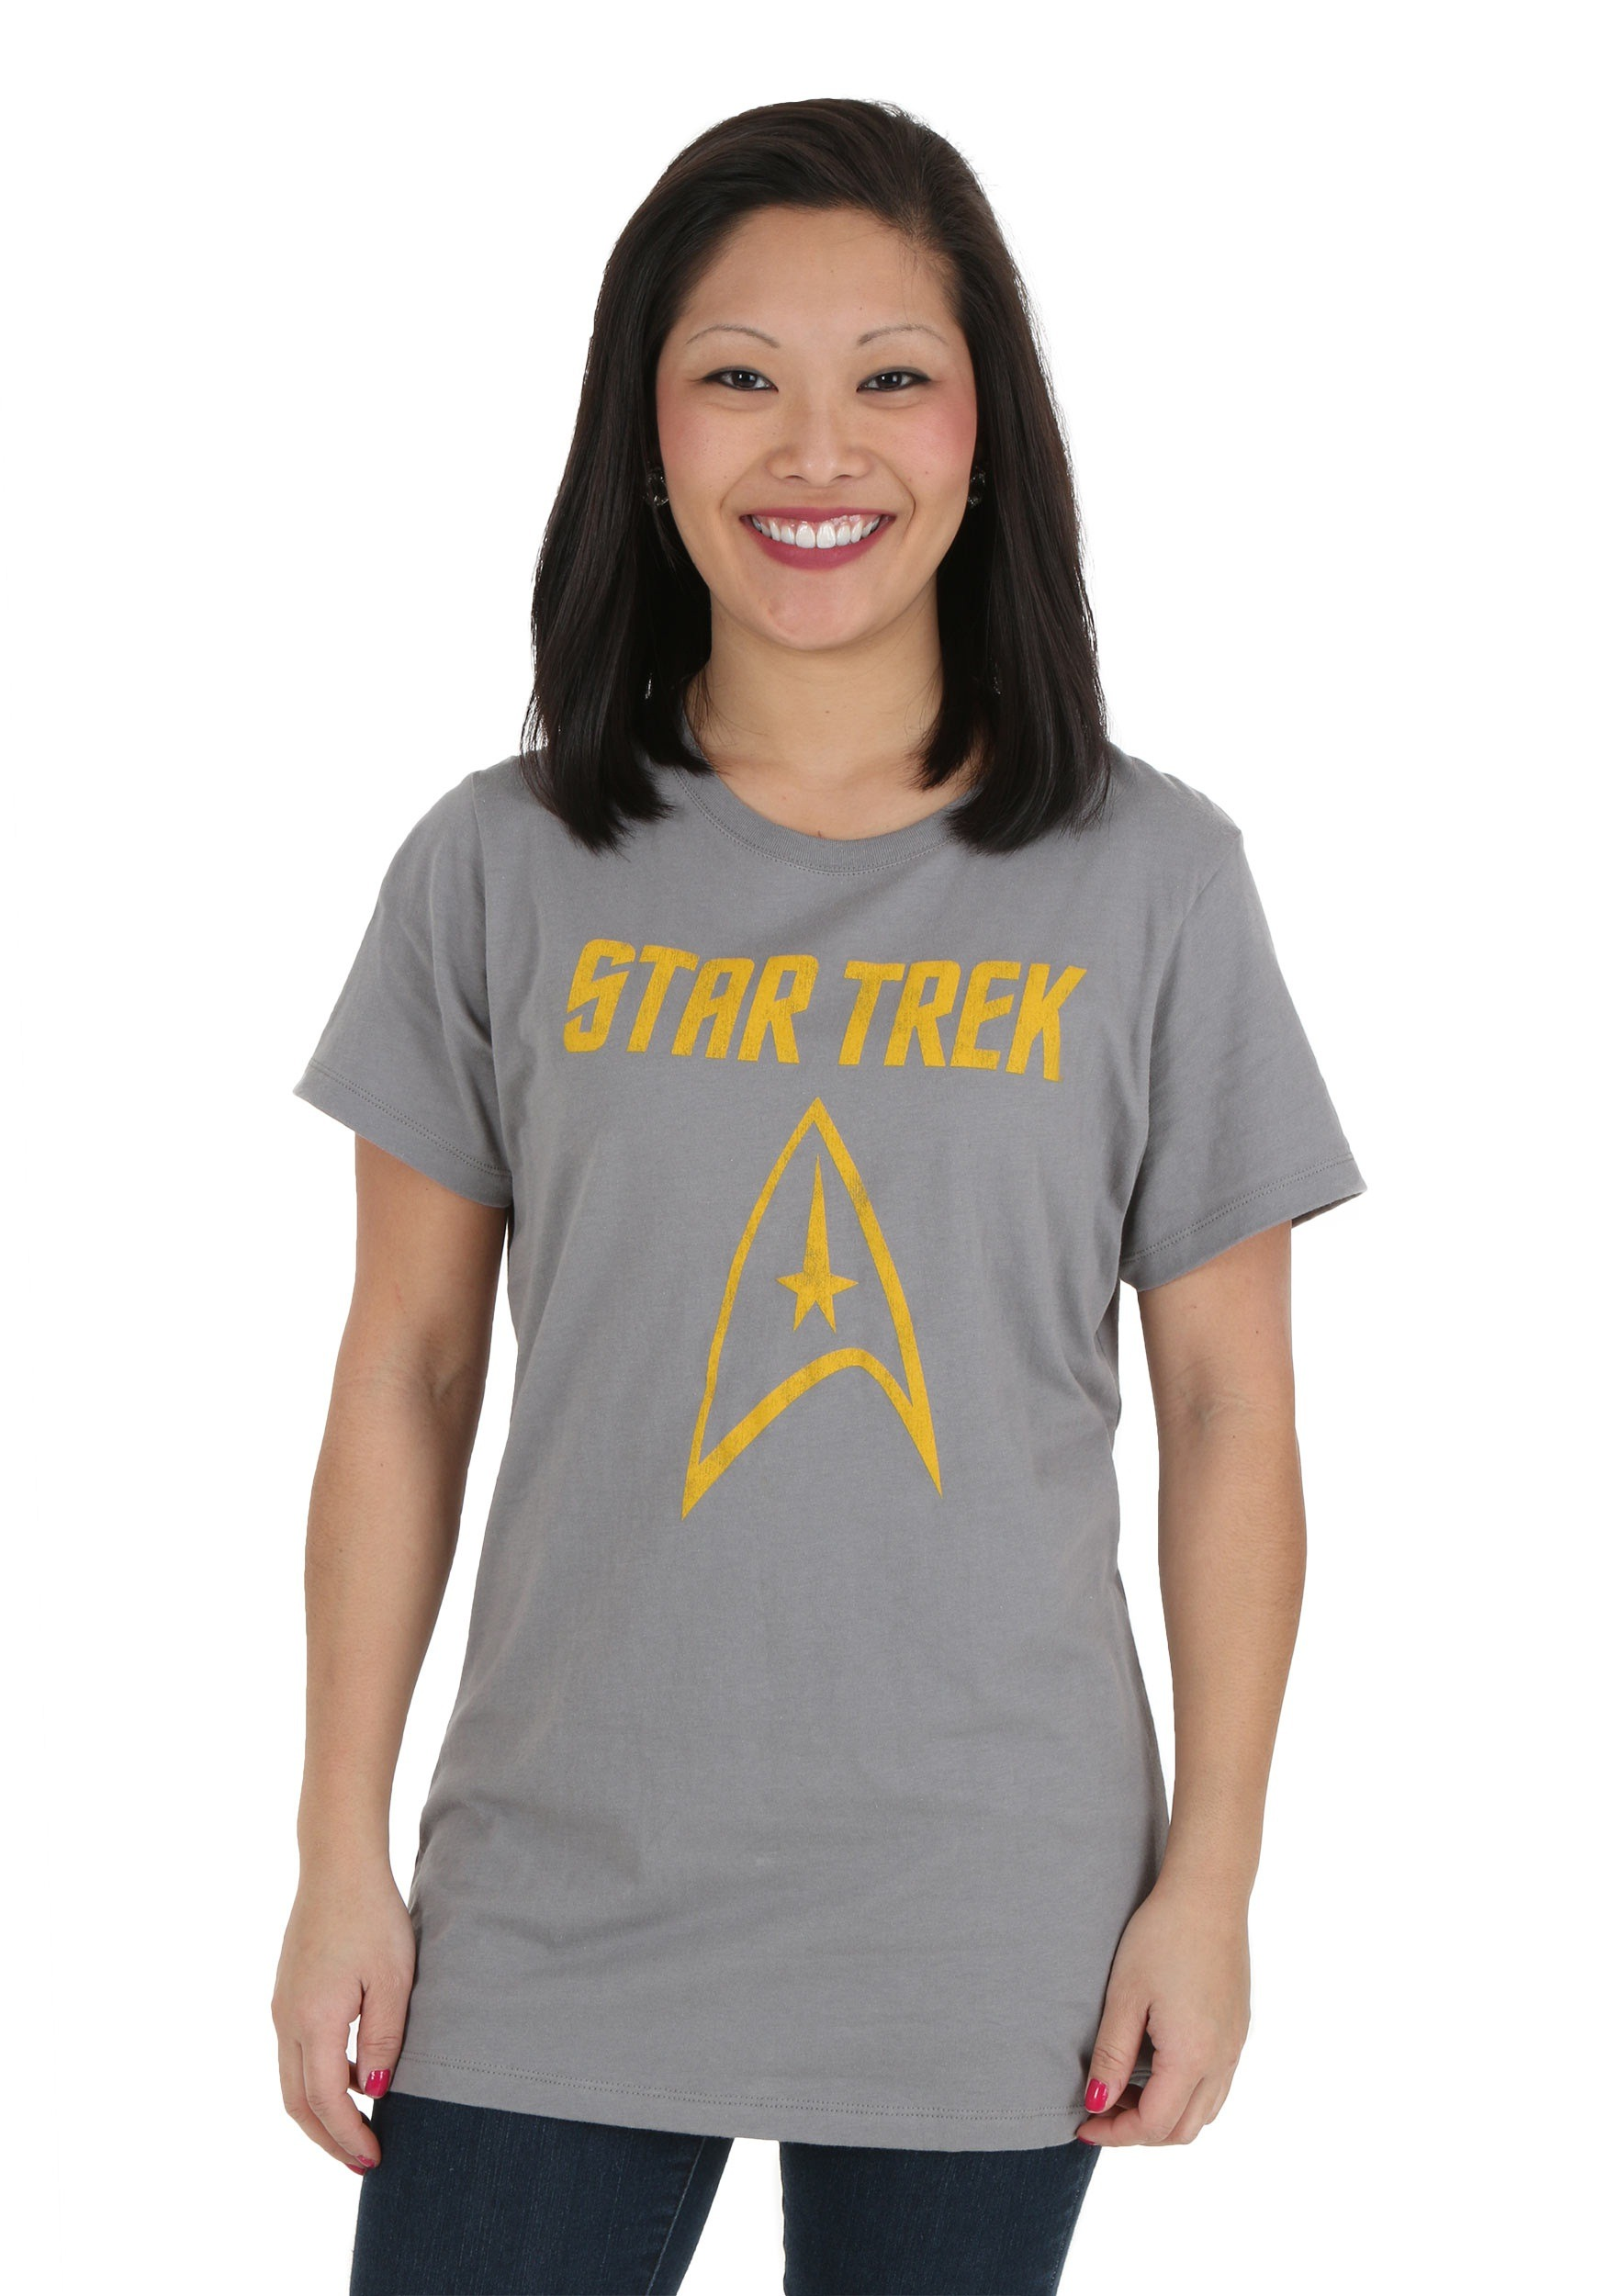 eaf19cf754 Star Trek VTC Logo Juniors T-Shirt